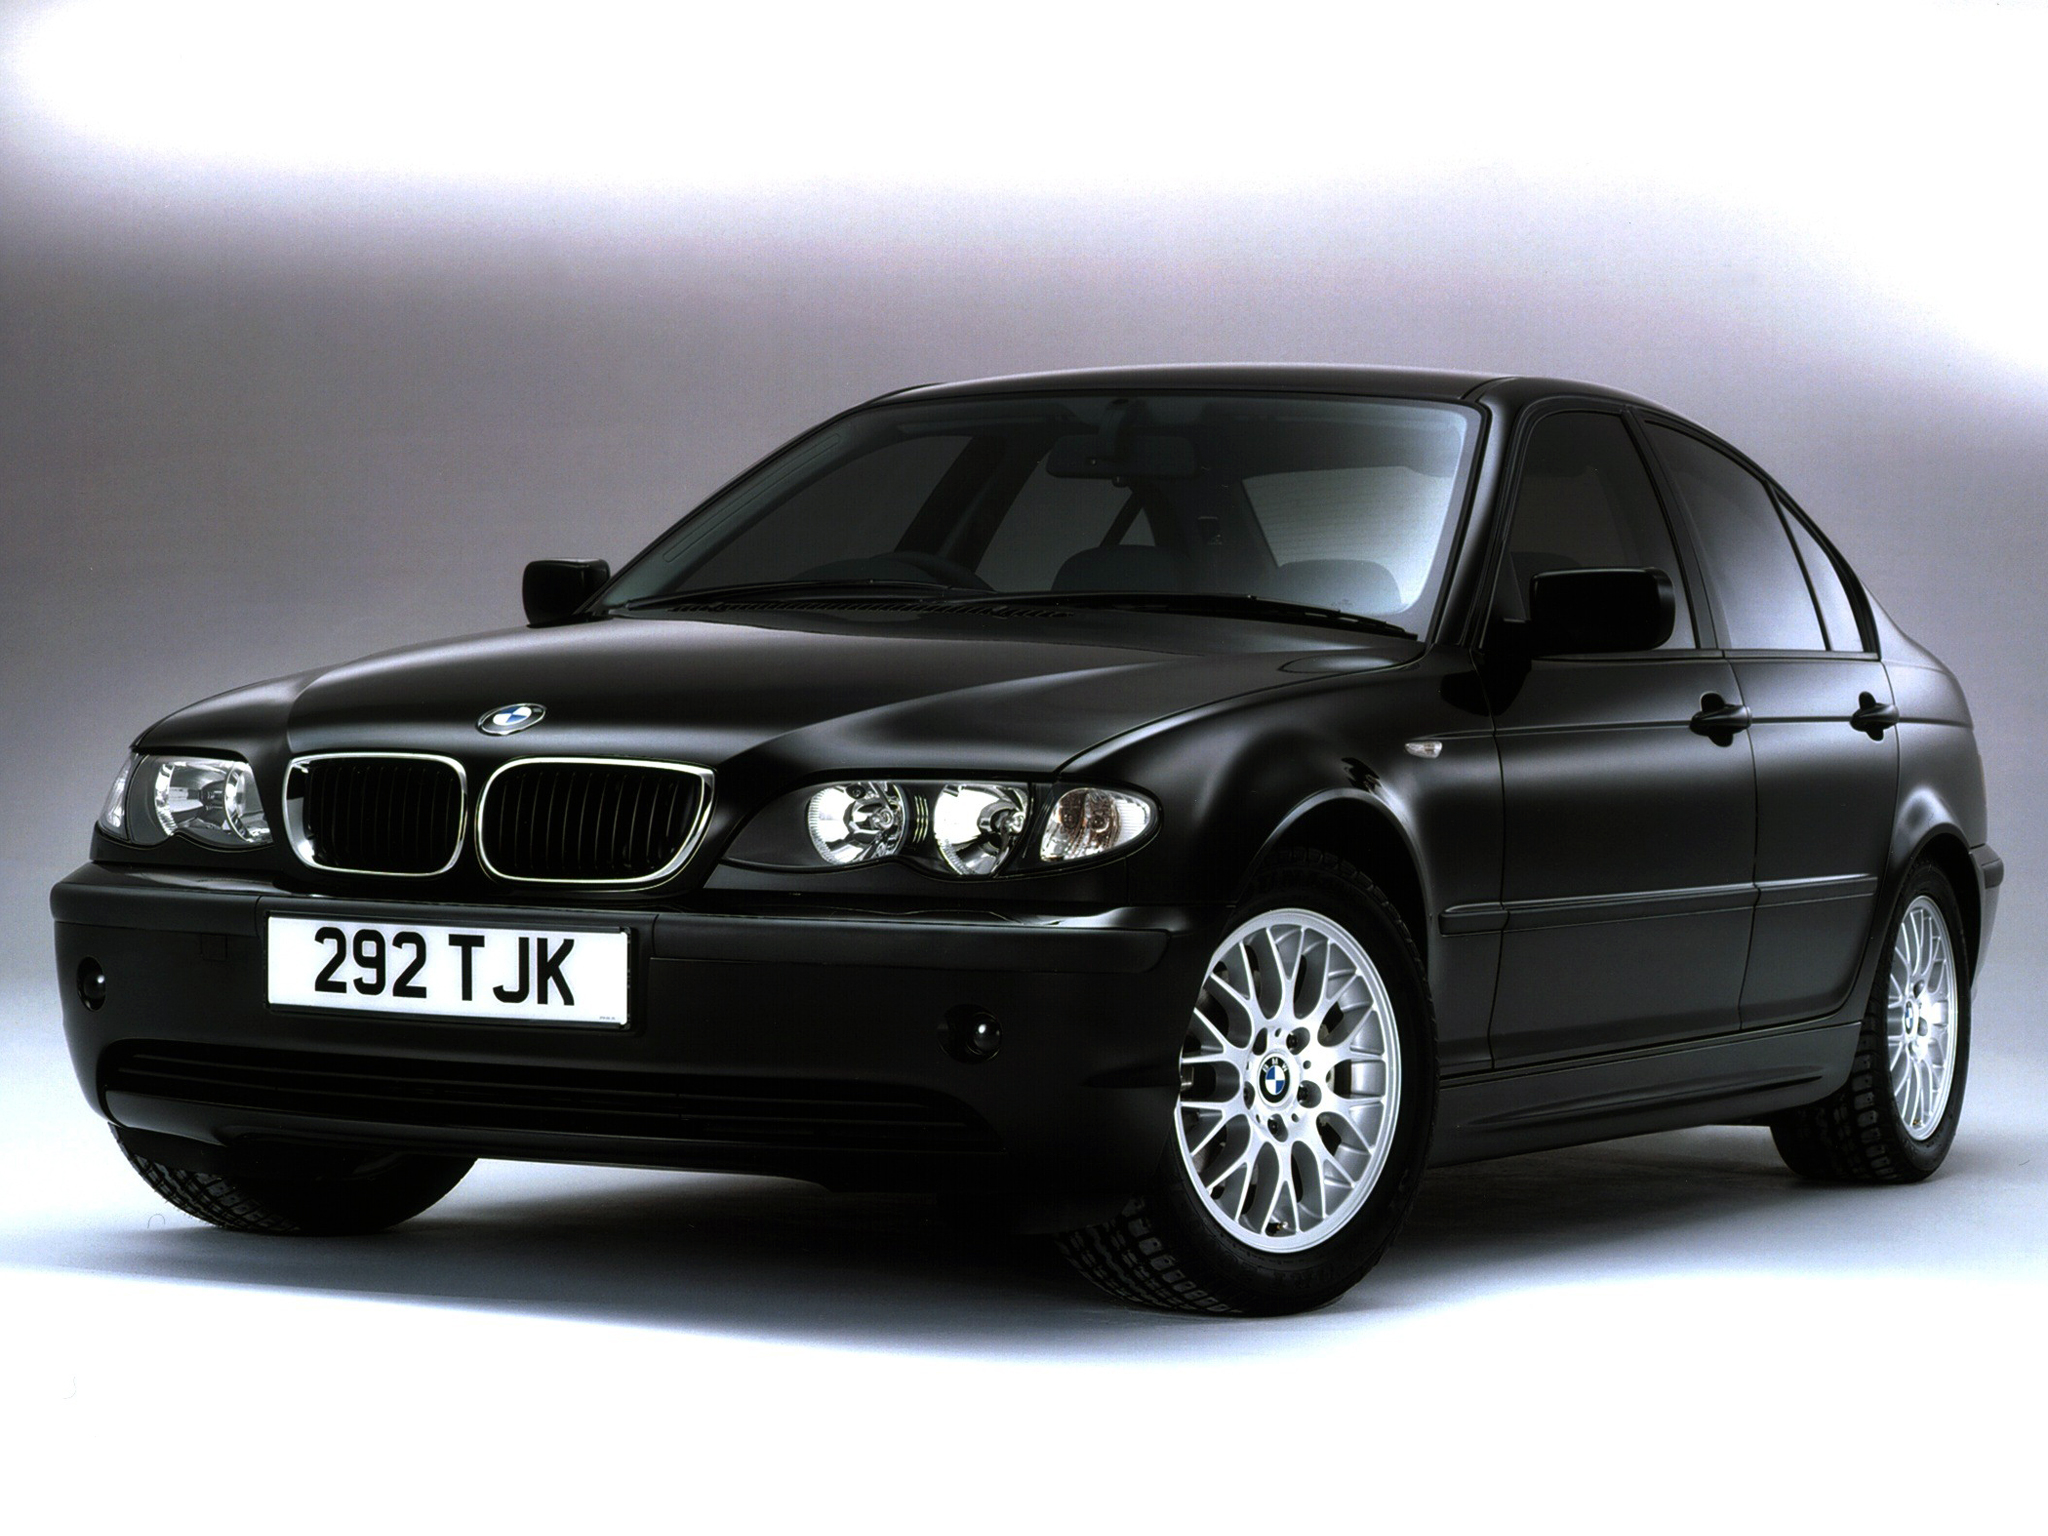 bmw 318i e46 2001 car photos catalog 2018. Black Bedroom Furniture Sets. Home Design Ideas